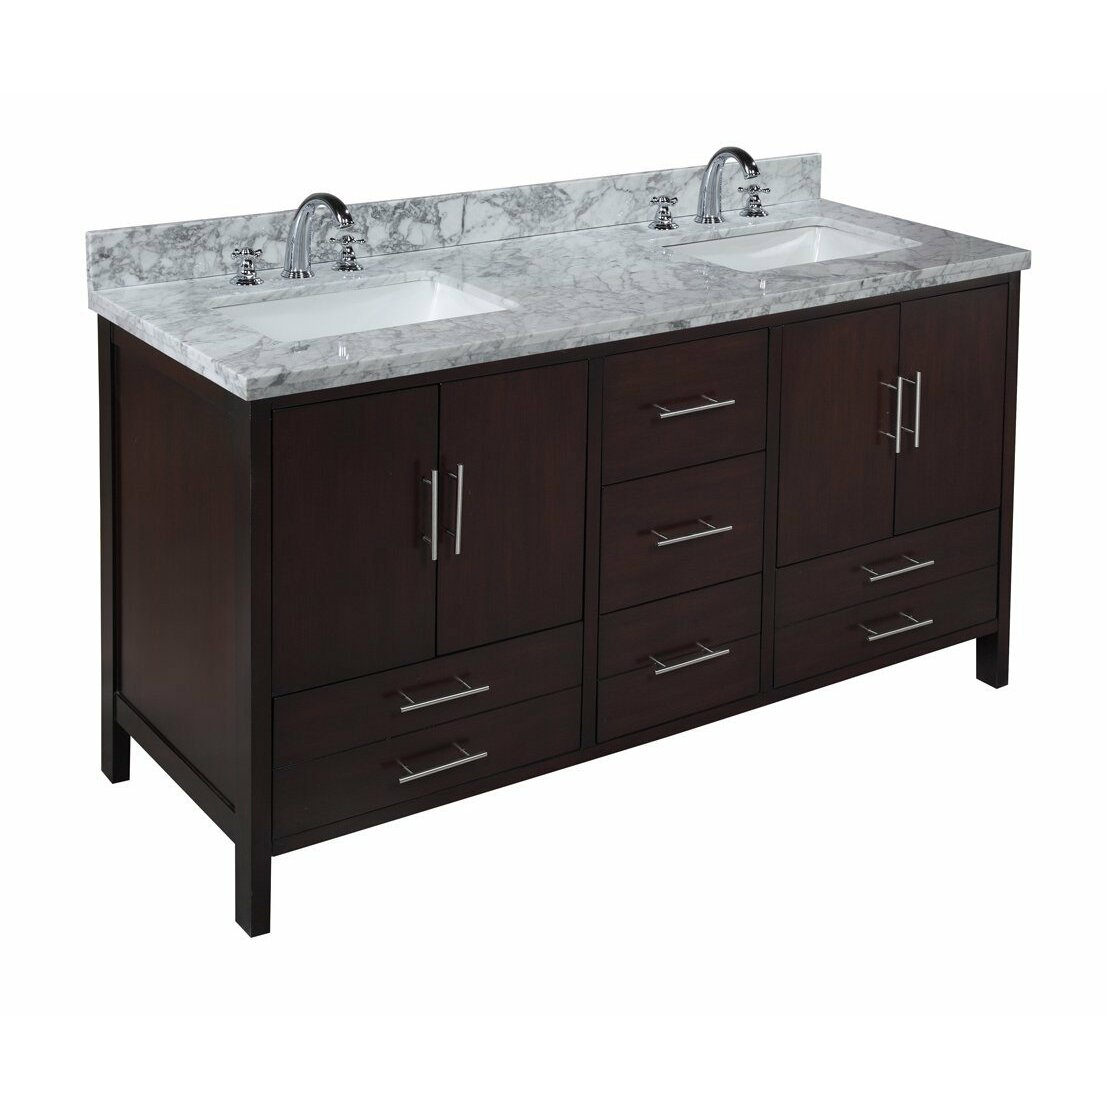 Kbc California 60 Double Bathroom Vanity Set Reviews